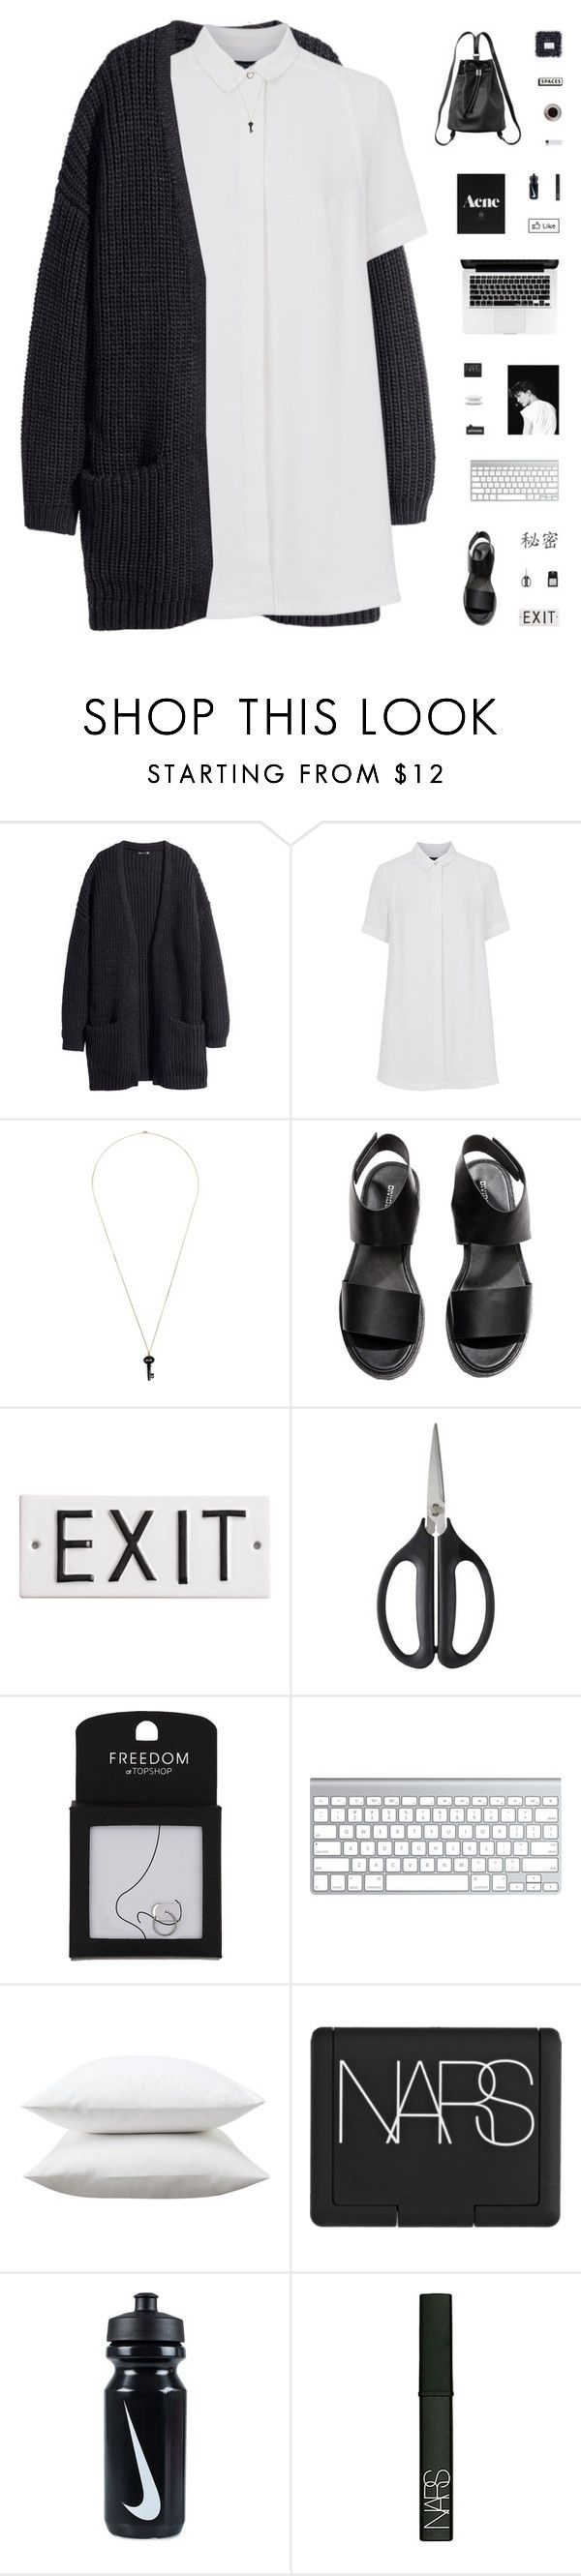 """MYSTERY LOVER"" by c-hristinep ❤ liked on Polyvore featuring moda, H&M, French Connection, Kristin Hanson, Rosanna, OXO, Topshop, Fieldcrest, NARS Cosmetics y NIKE"